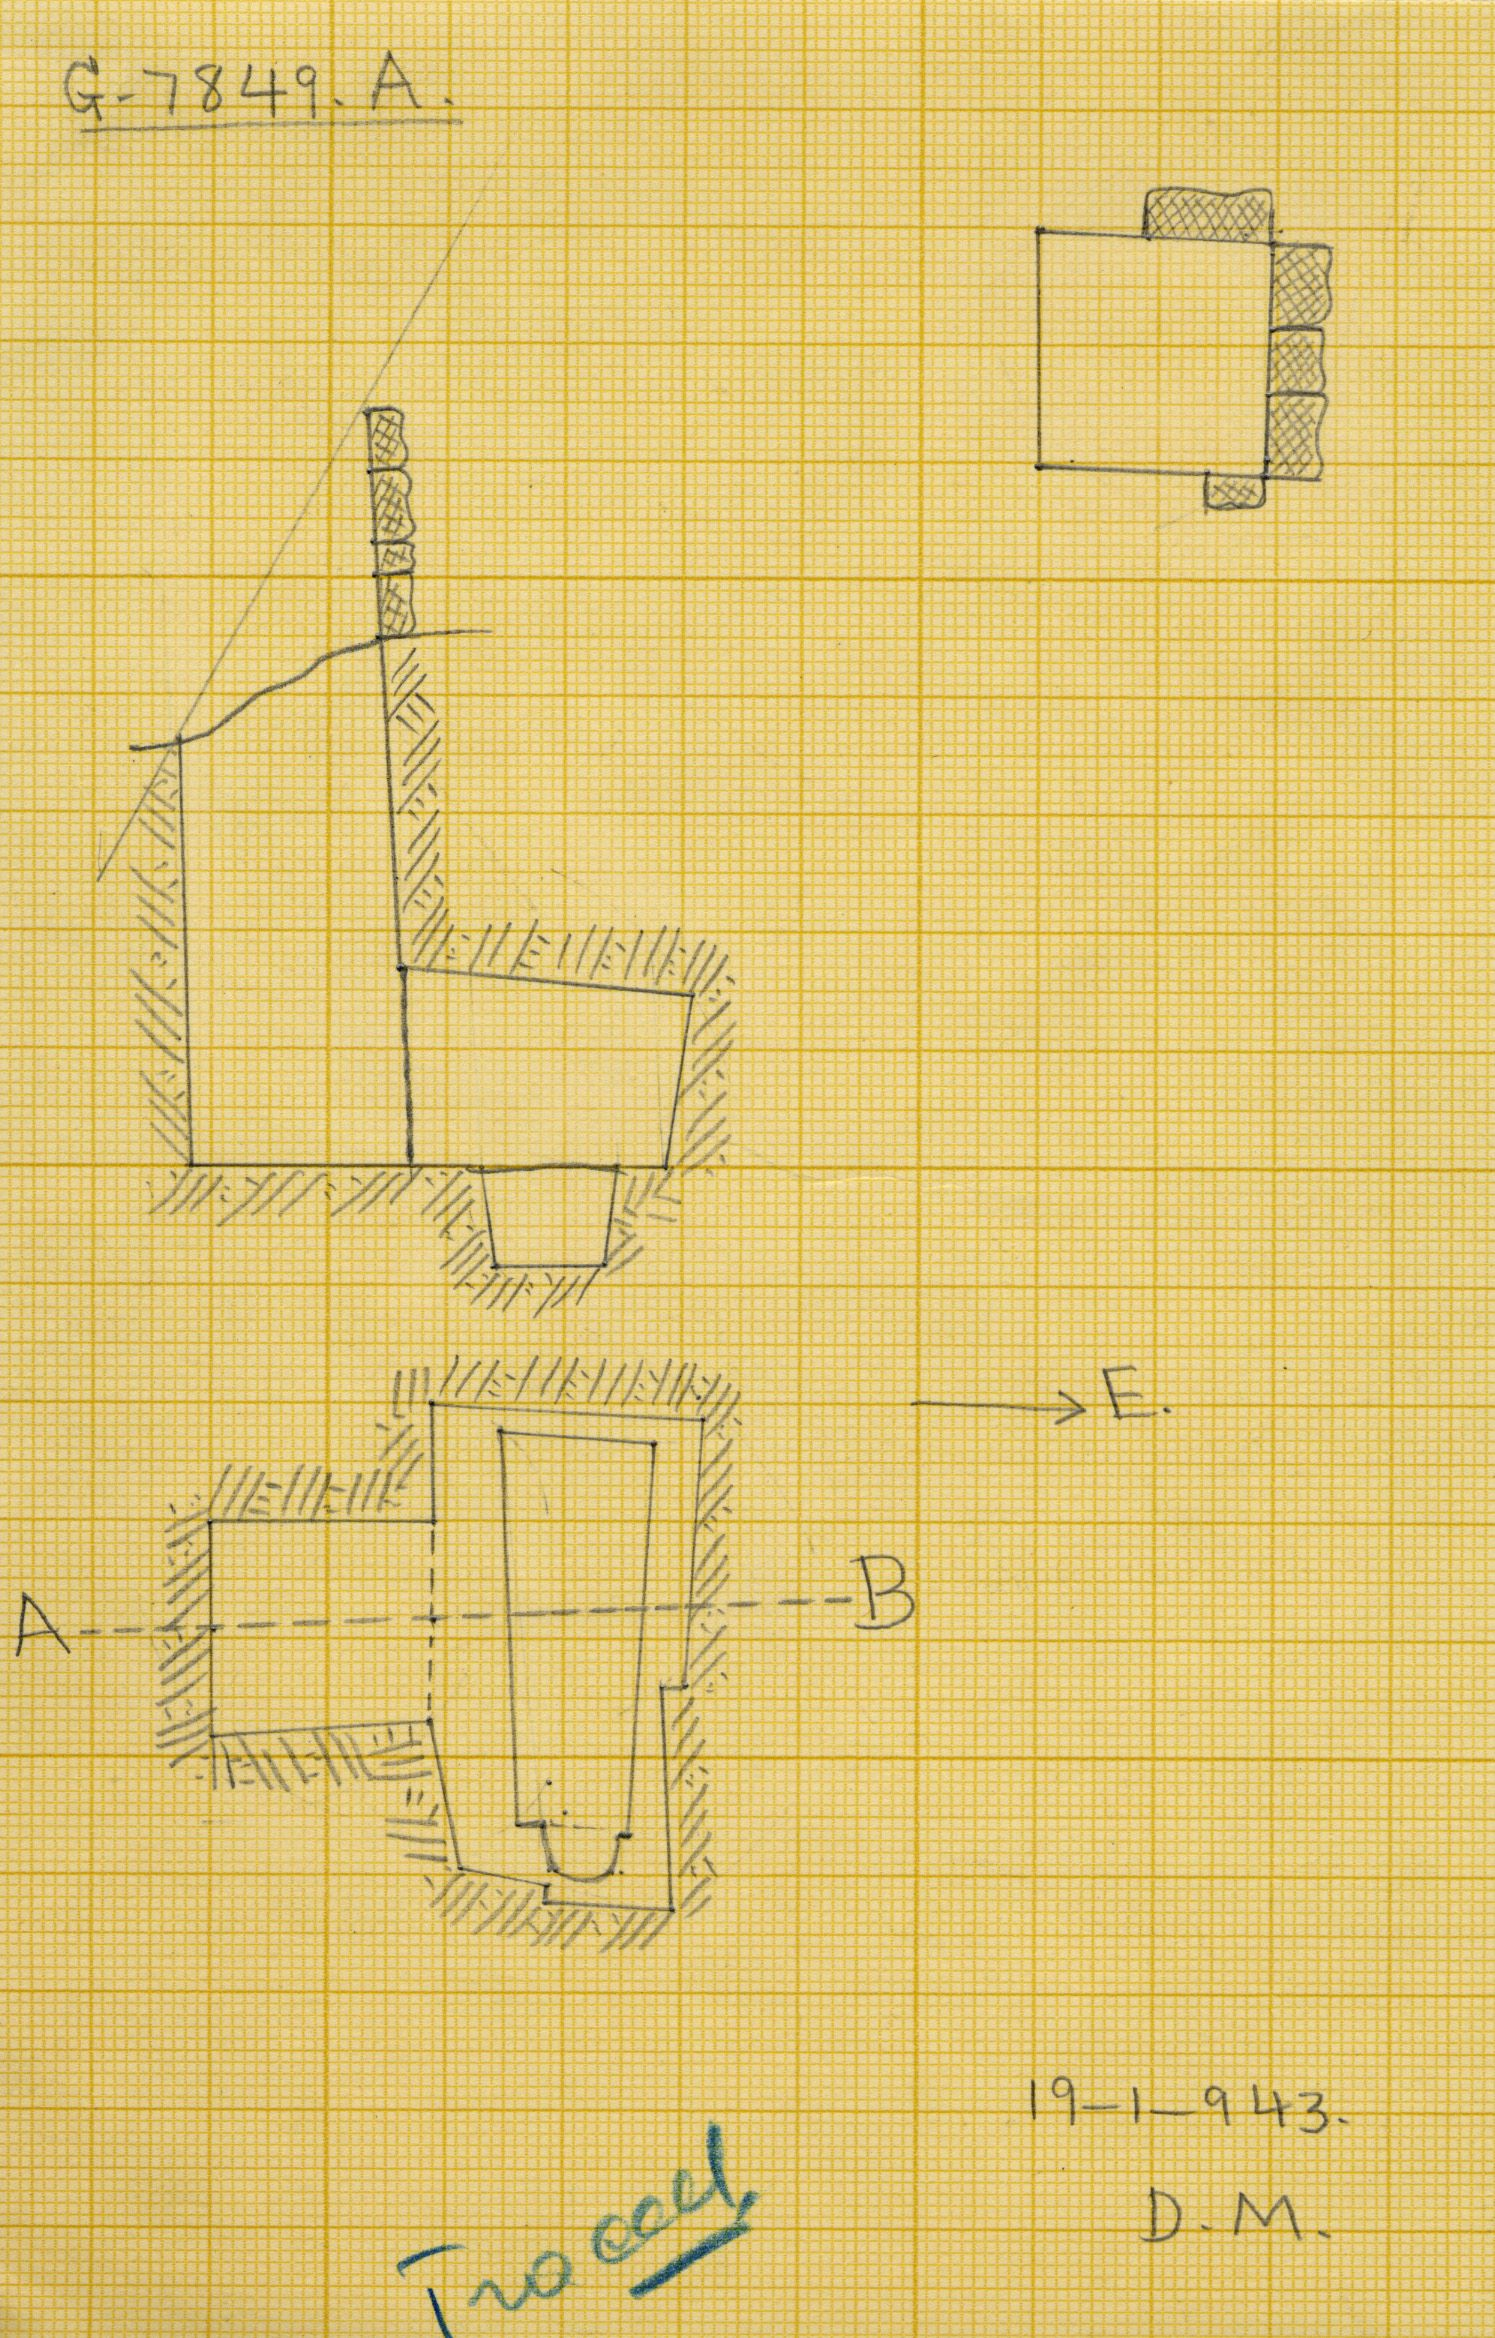 Maps and plans: G 7849, Shaft A